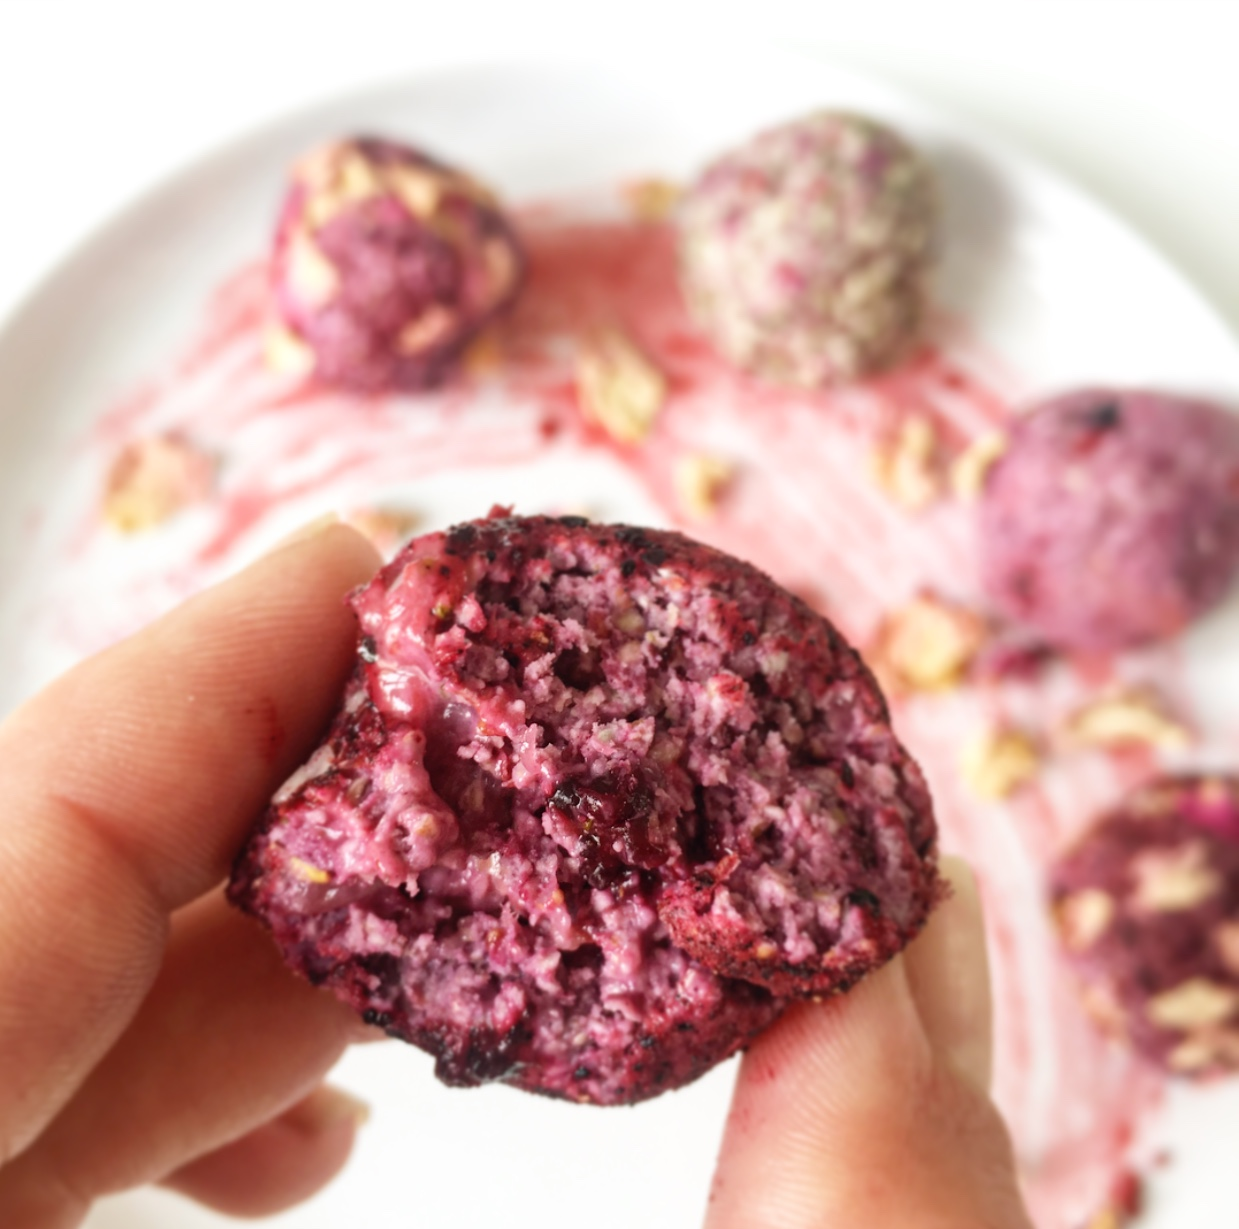 5-ingredient Berry Bliss Ball ready for its close-up. #sodreamy